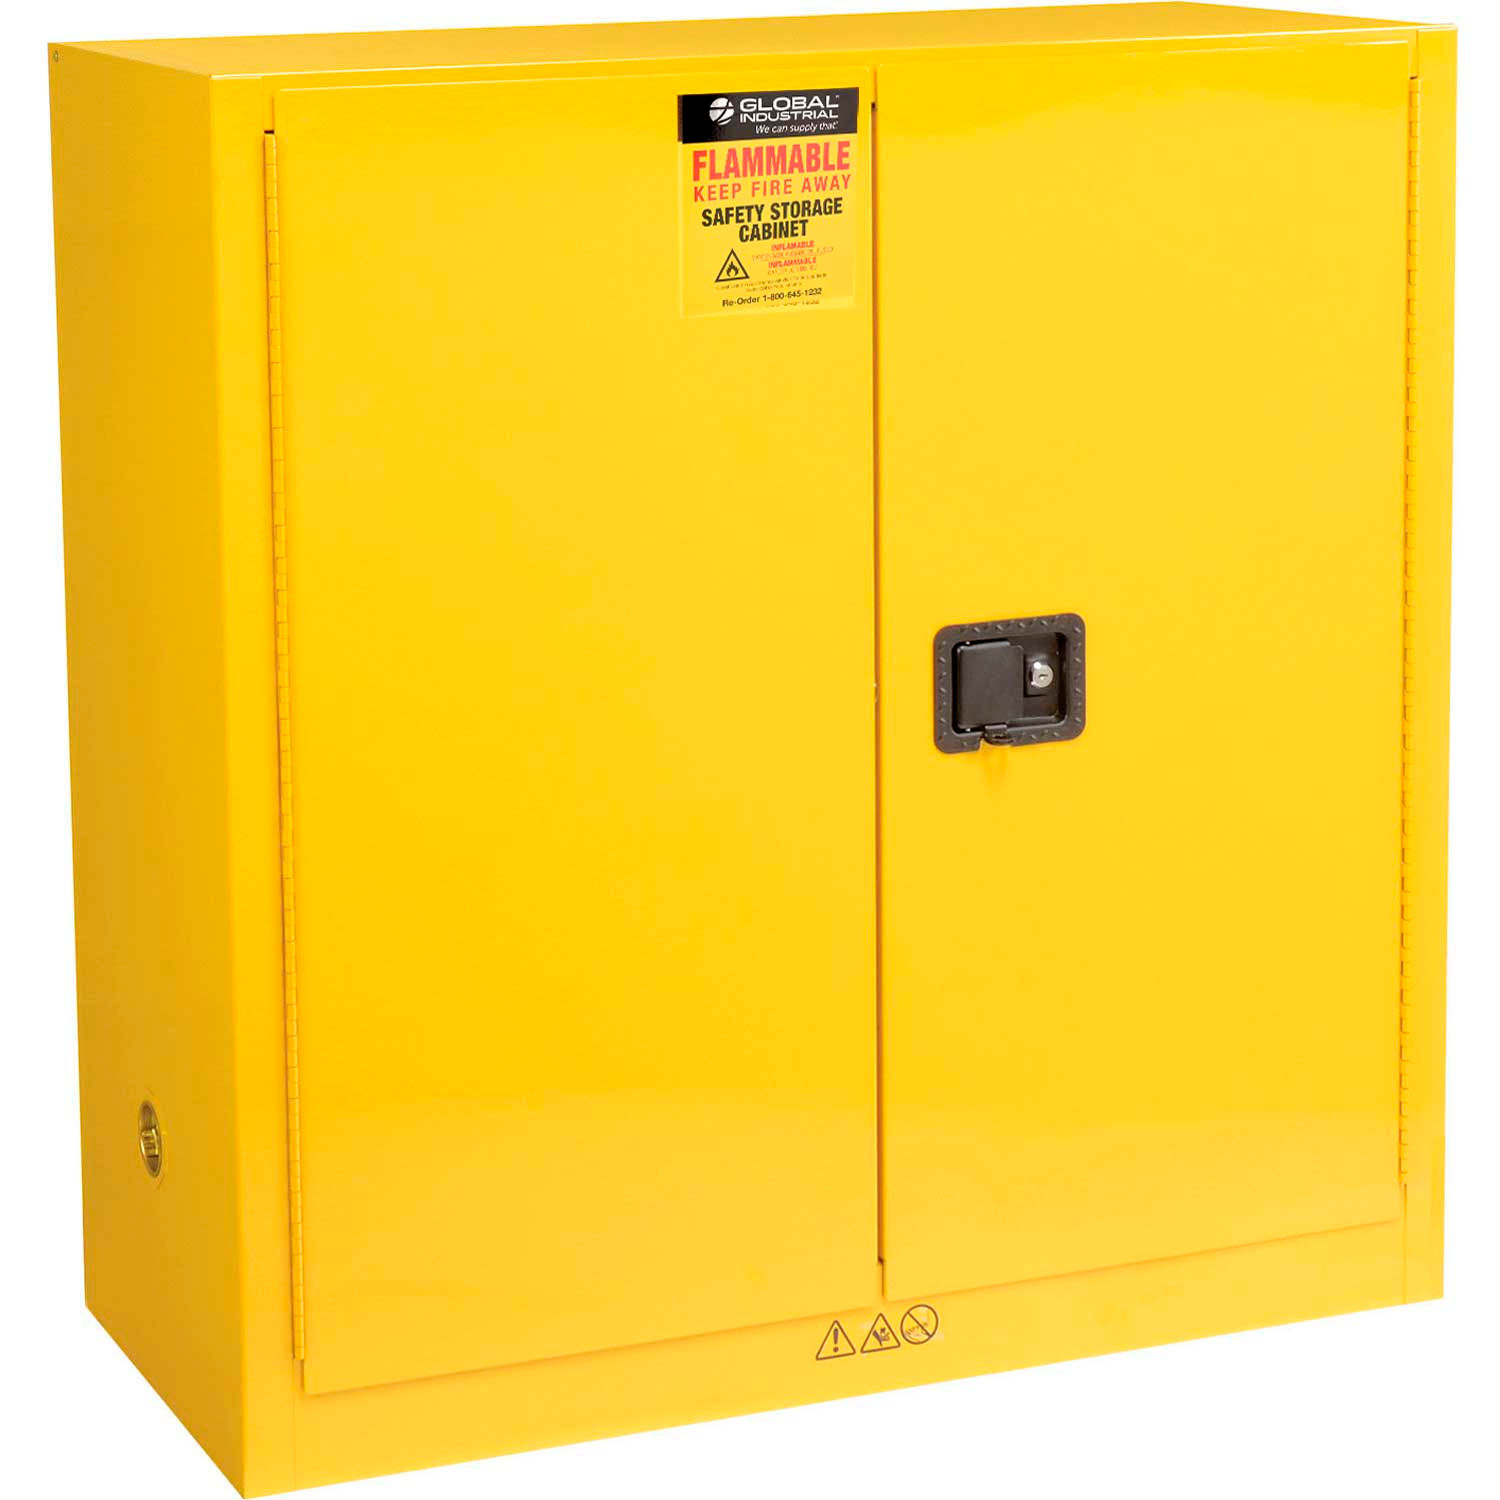 Flammable Osha Cabinets Cabinets Flammable Global 8482